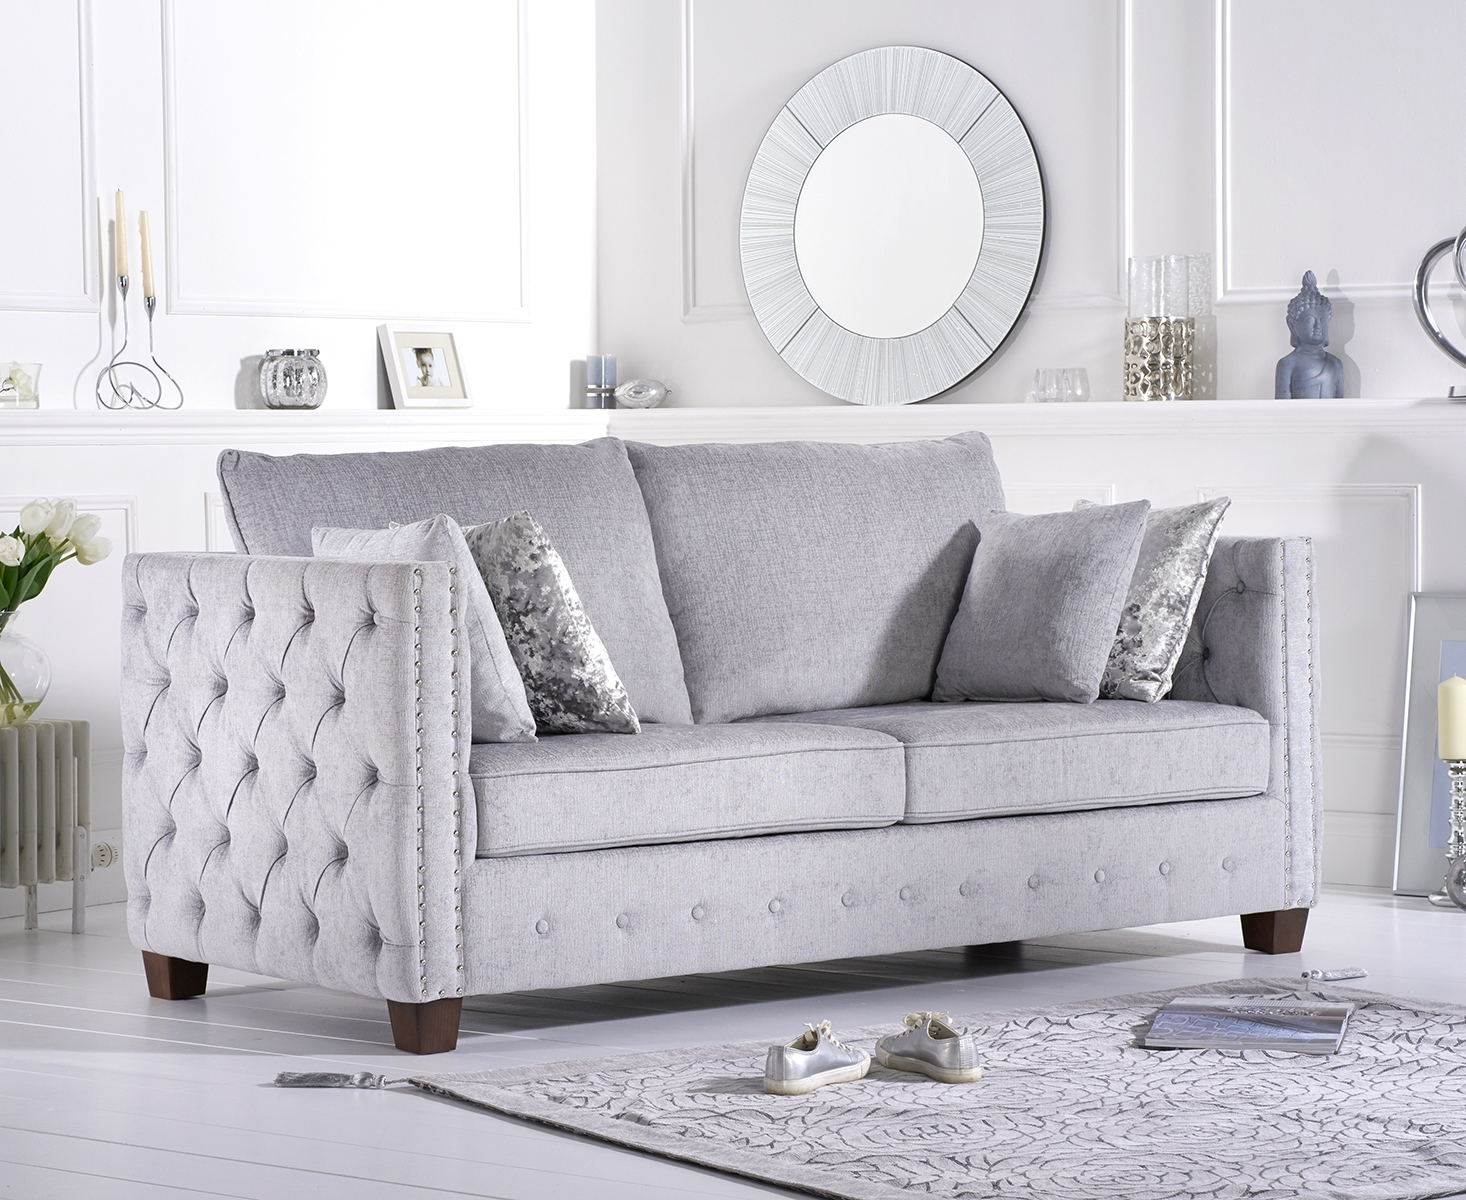 Amelia Grey Plush Fabric Three-Seater Sofa